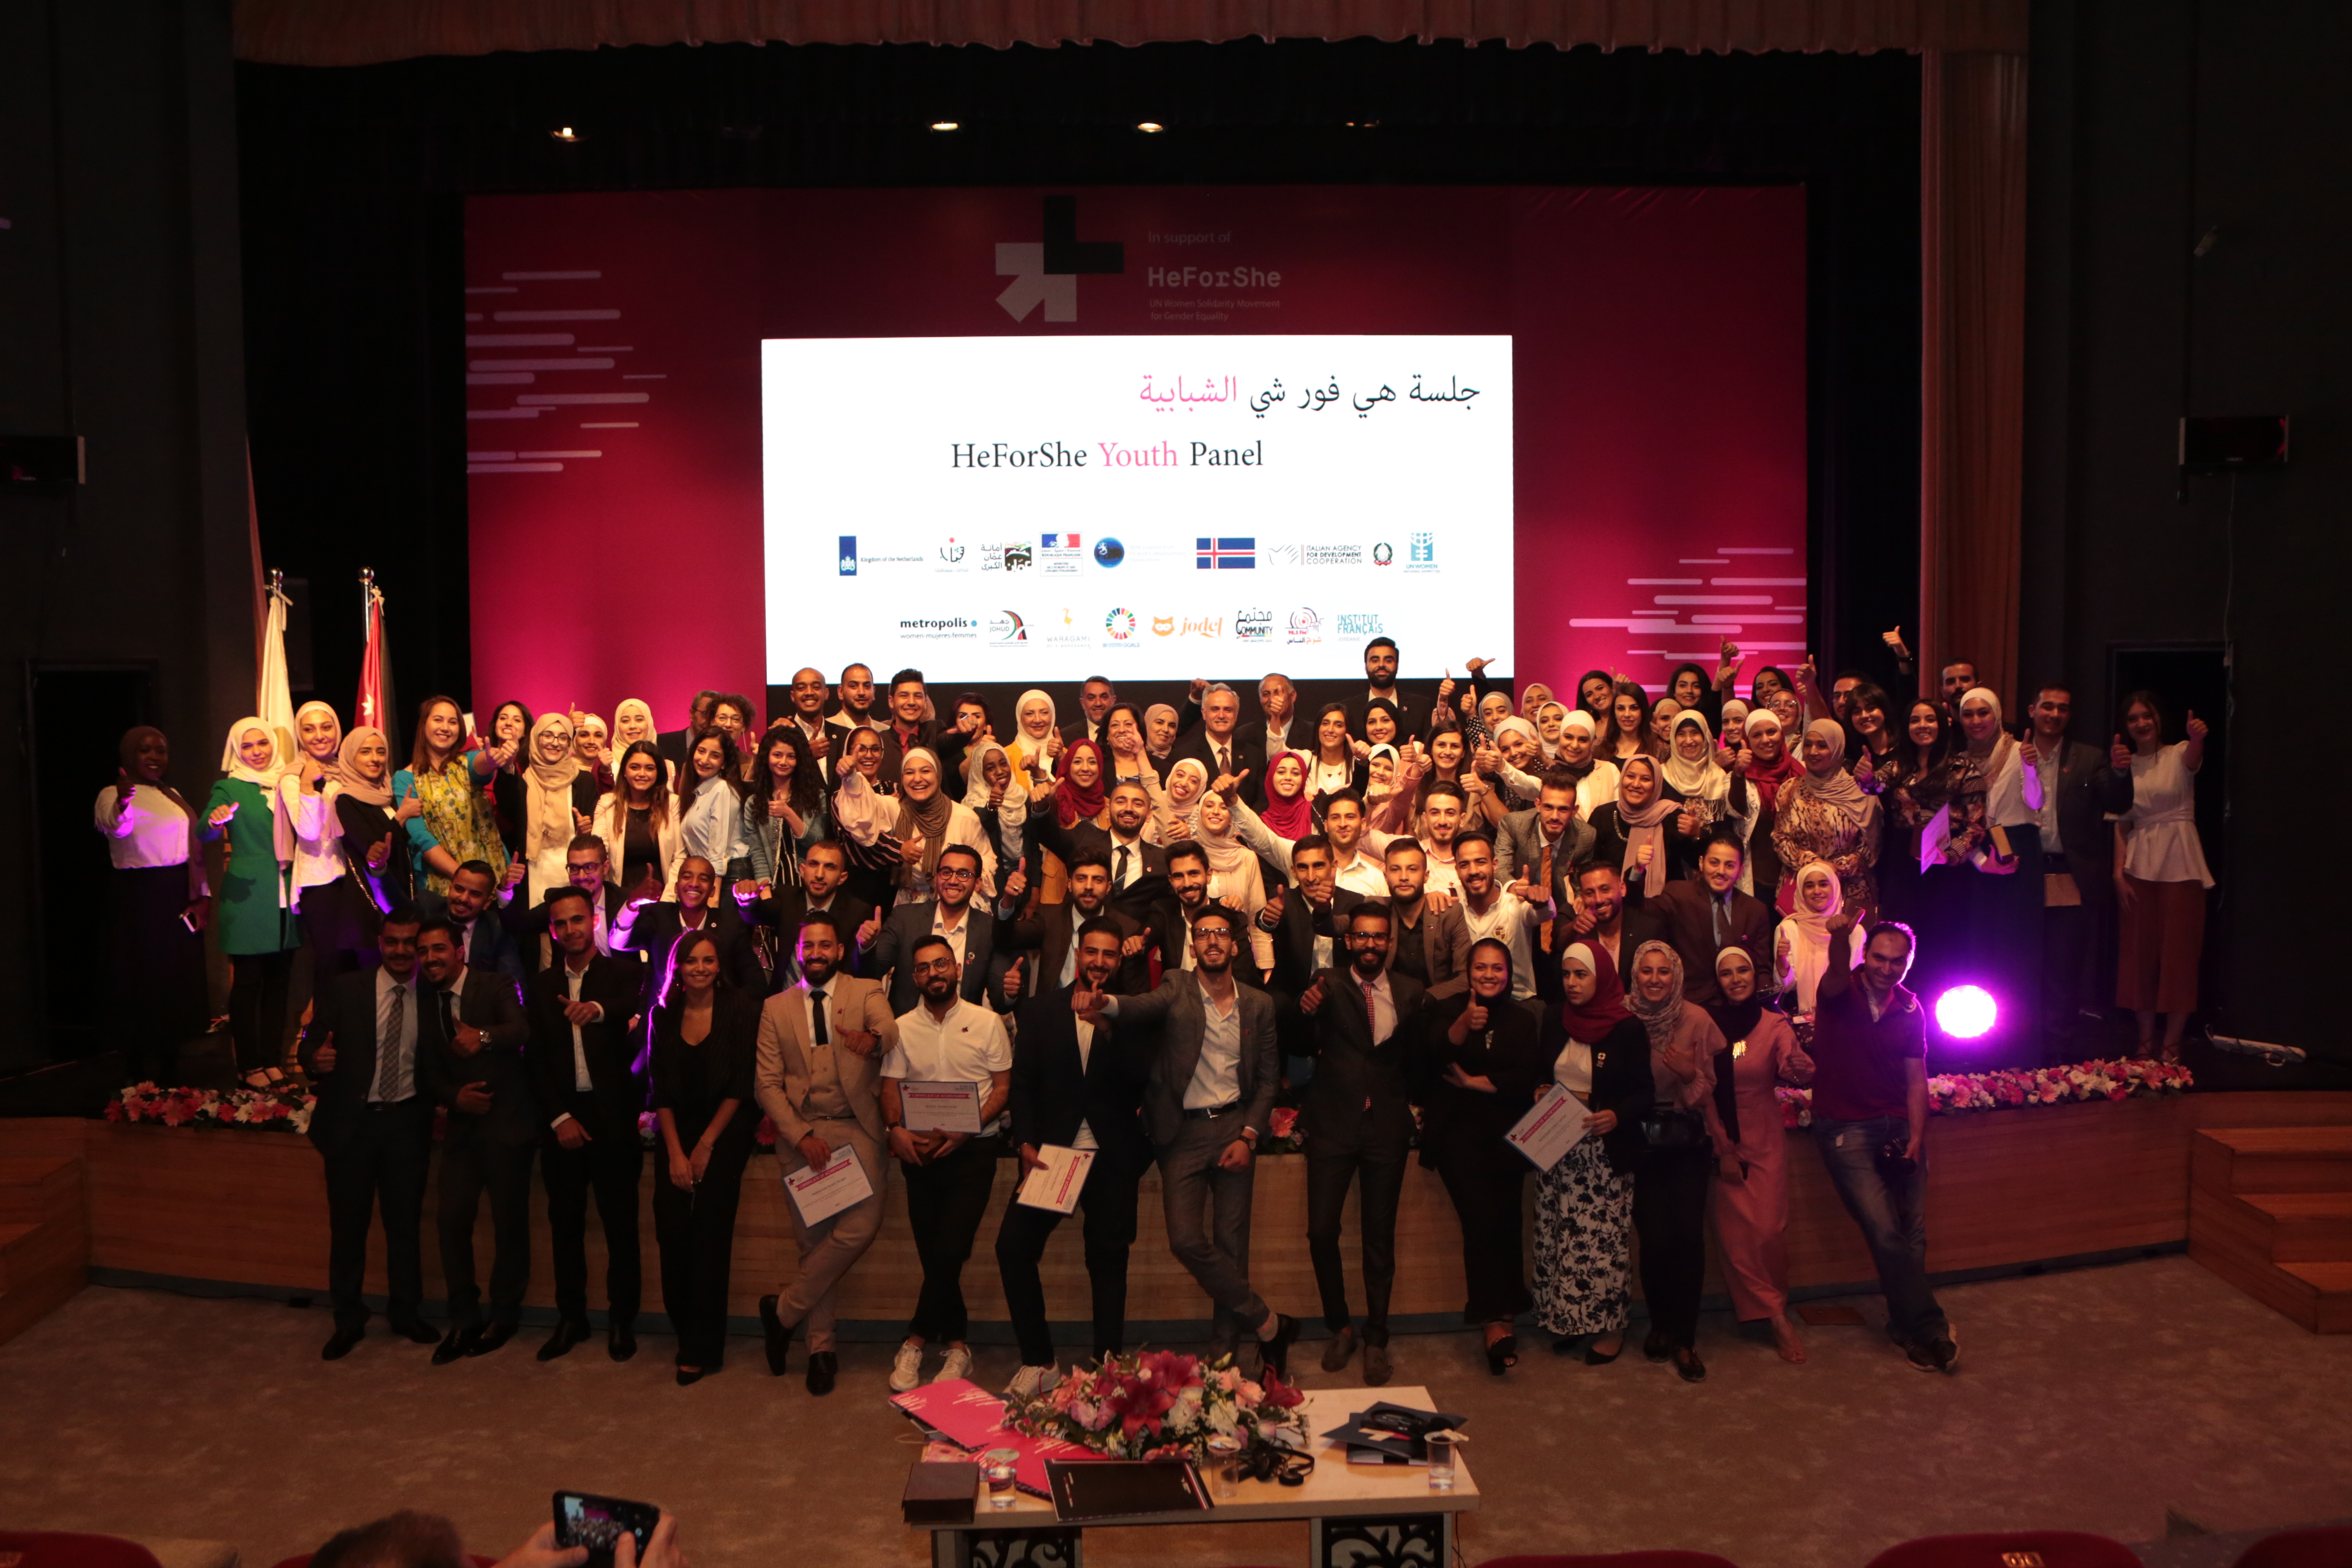 200 YOUTH VOLUNTEERS AWARDED AT HEFORSHE CLOSING CEREMONY FOR REACHING 20.000 COMMITMENTS ON WOMEN'S EMPOWERMENT